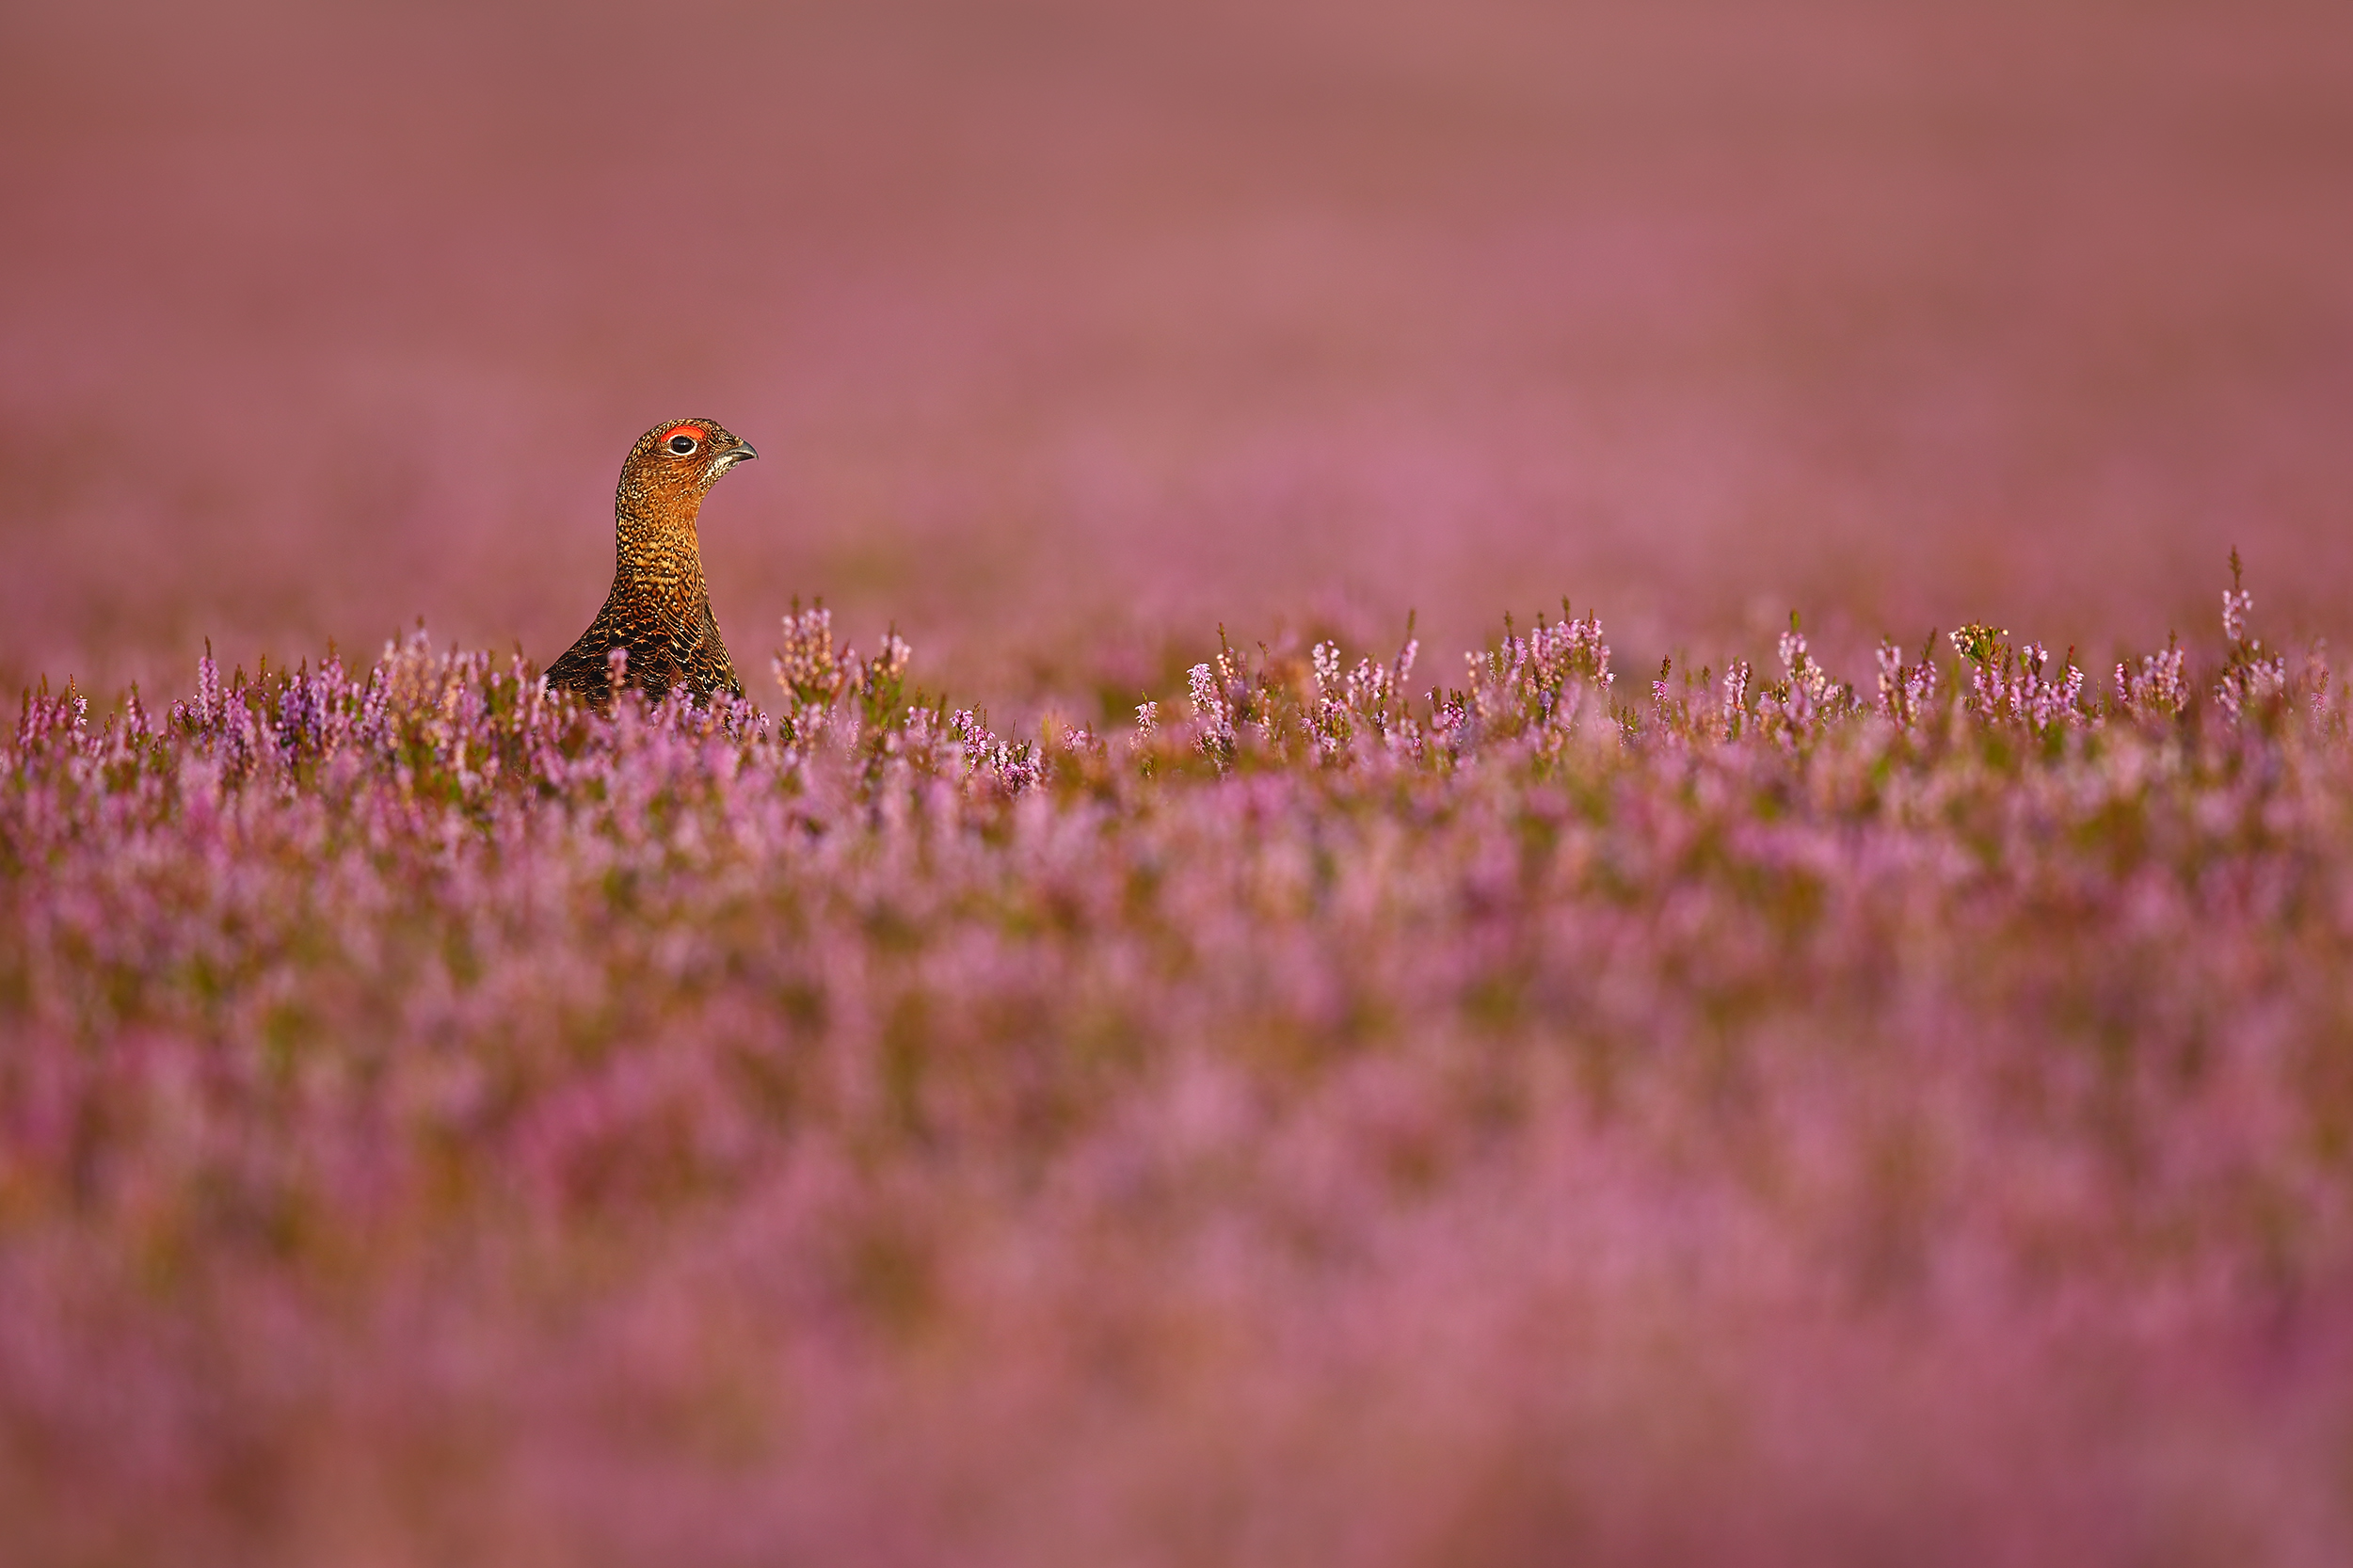 Pretty in Pink, wild, wildlife, Simon, Roy, photography, Bird Photographer of the Year 2019 Awards